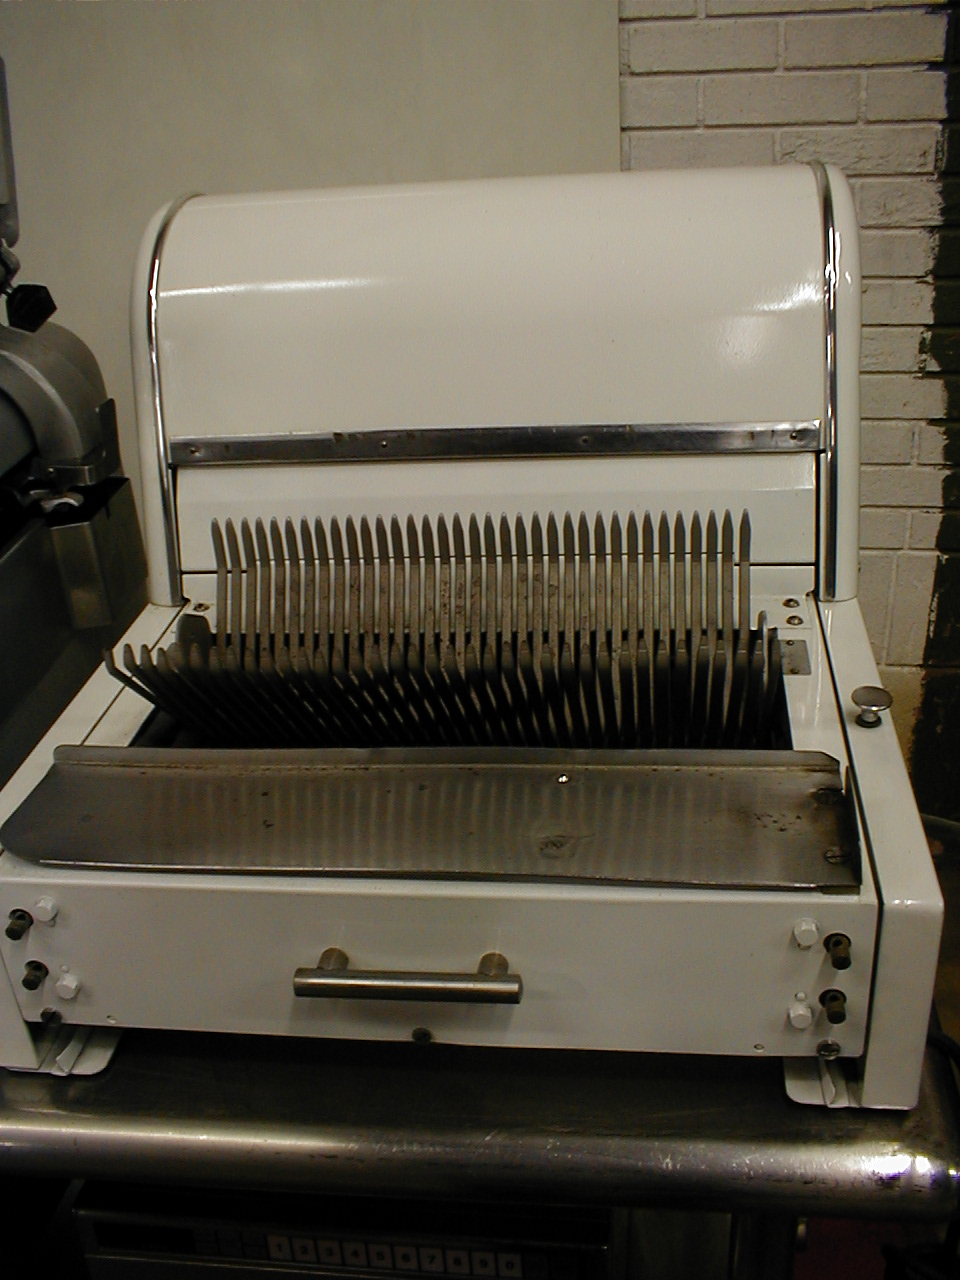 Berkel automatic bread slicer with new blades 115 voltage. Freight charges to be added to price